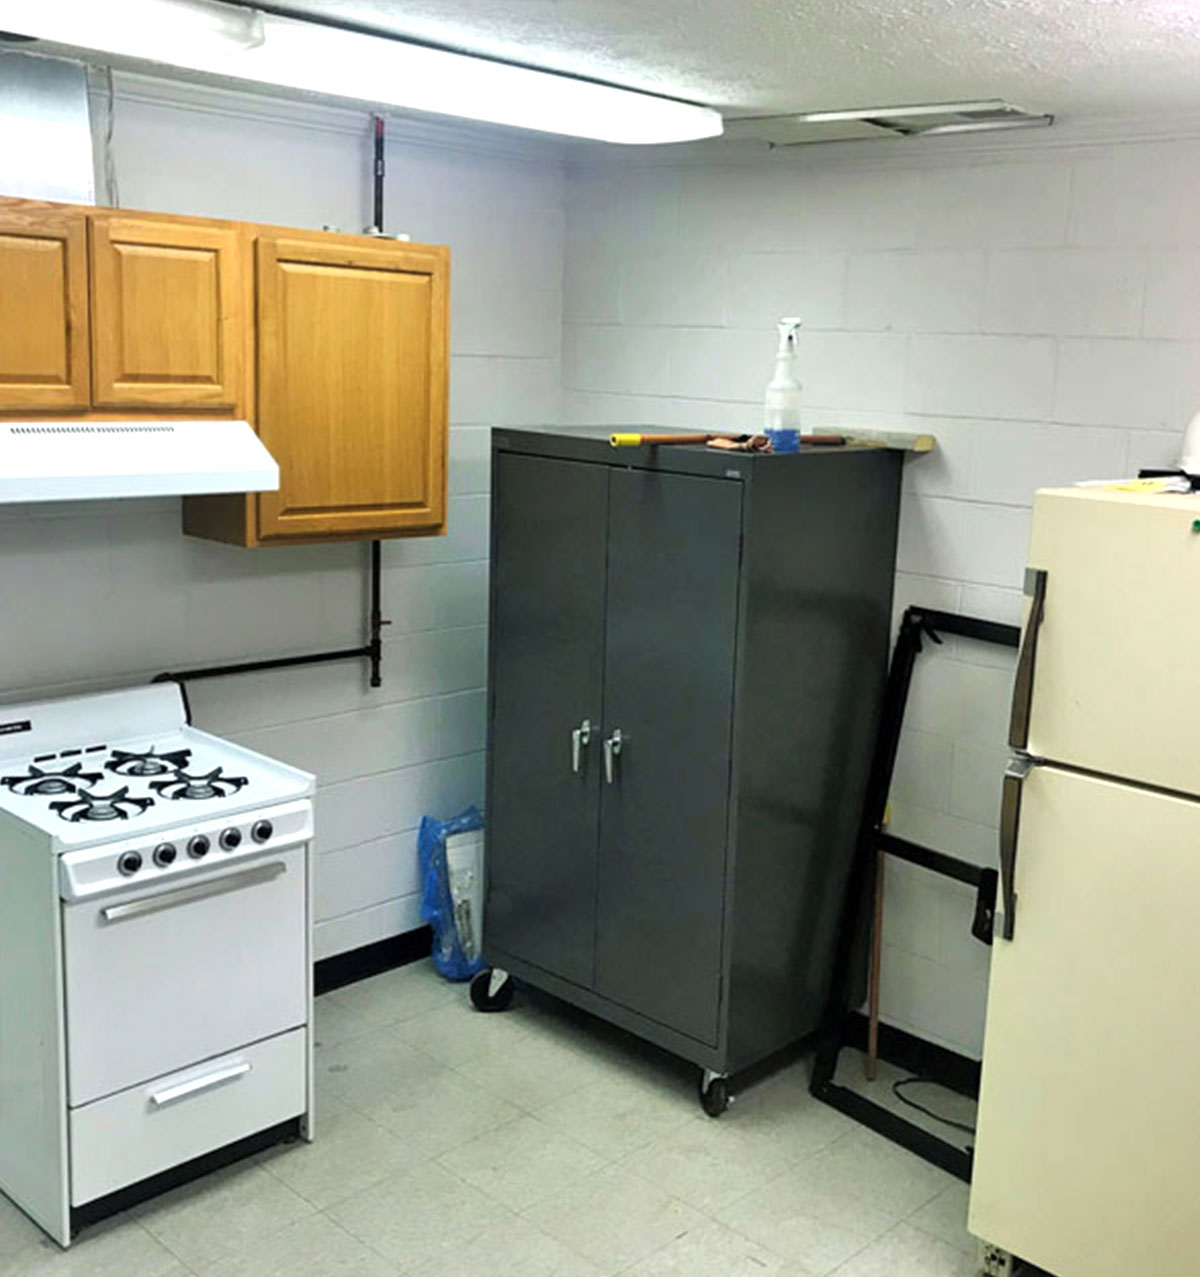 Learn Residential Energy Efficiency- Kitchen Diagnostic Lab